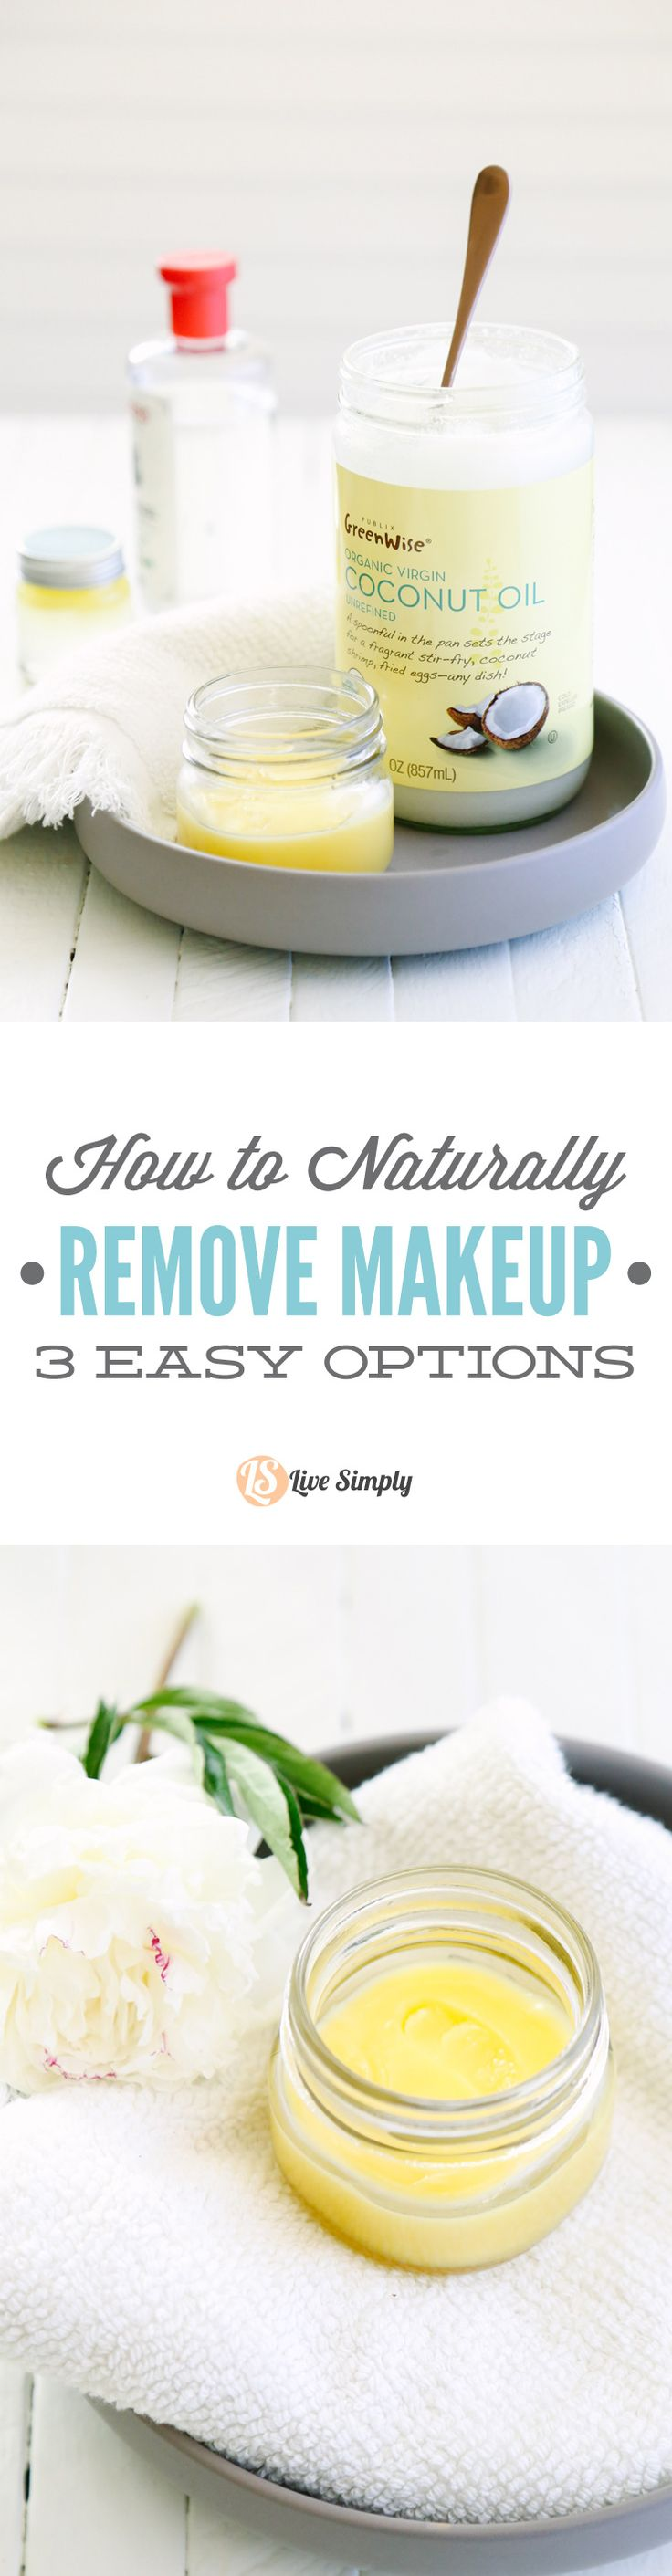 The makeup remover balm recipe is my absolute favorite (#3). Works so well and leaves my sensitive skin feeling great and makeup- free! Great ideas, using simple ingredients, for how to naturally remove makeup.